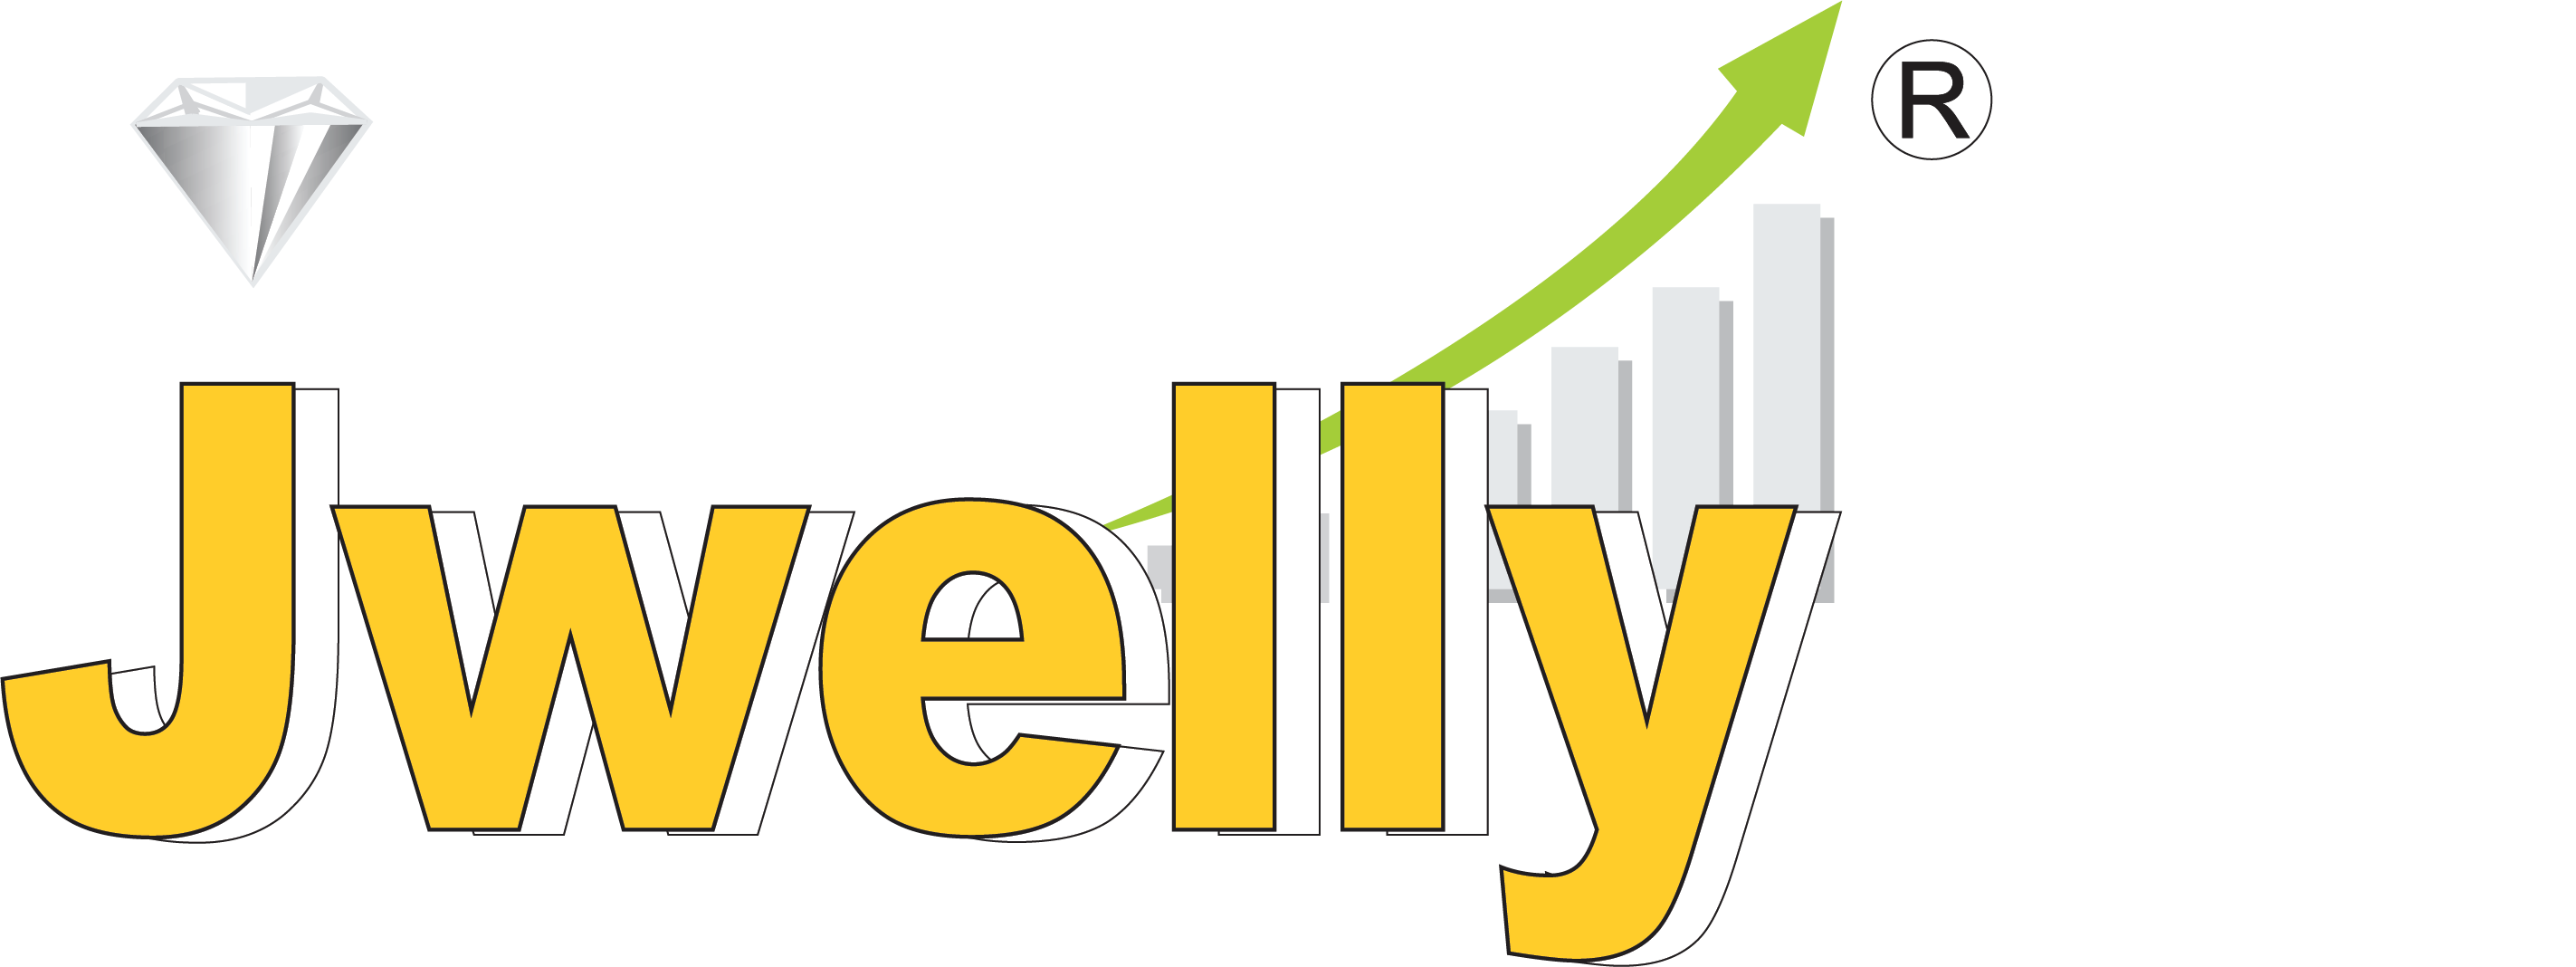 Jwelly_logo